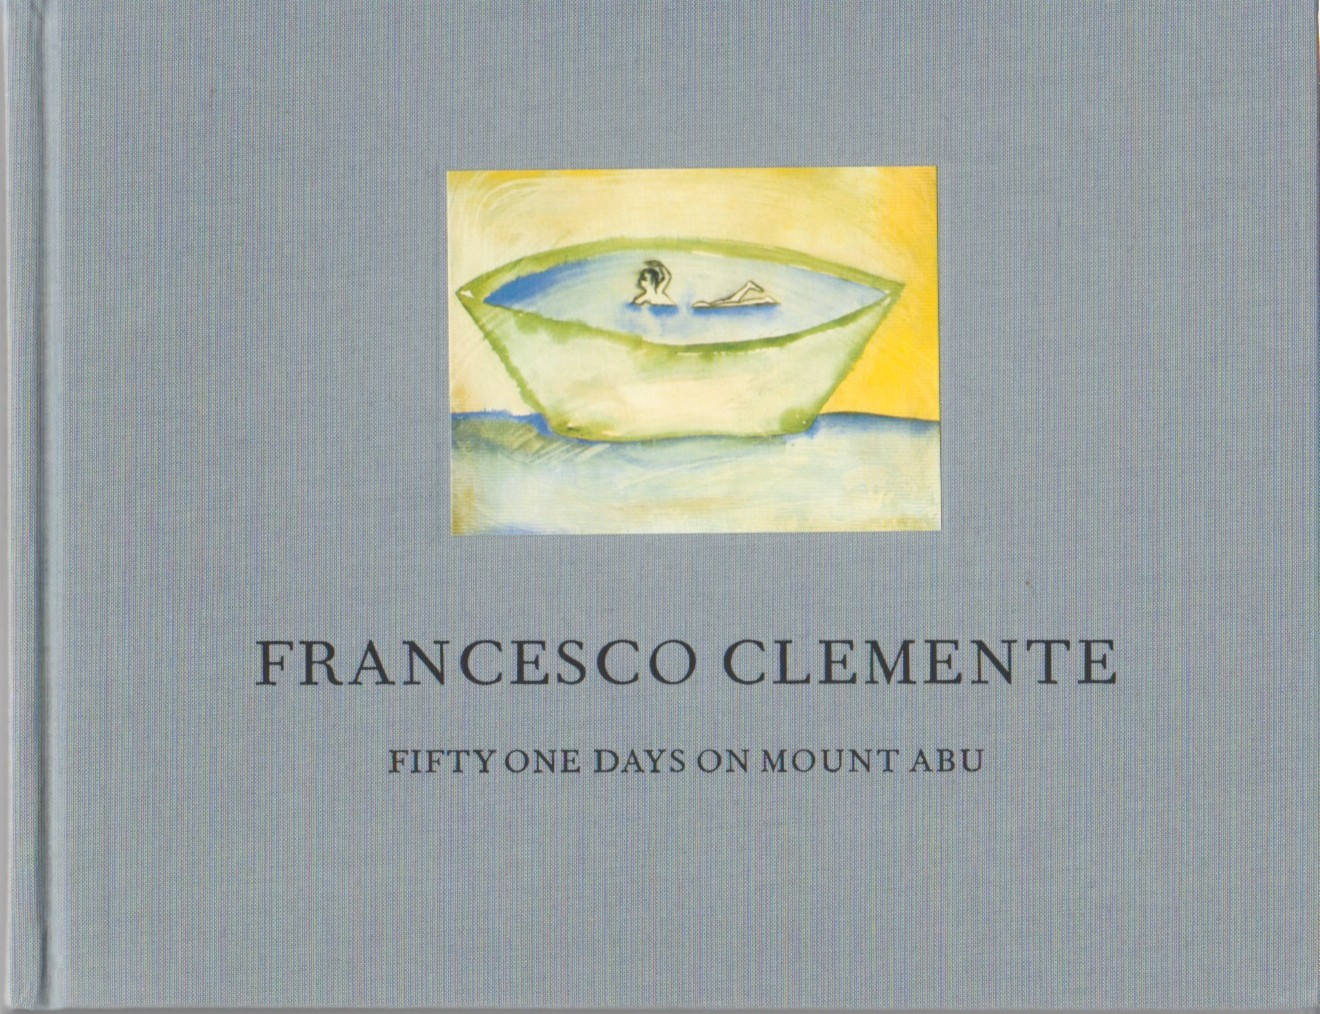 (CLEMENTE, FRANCESCO). CLEMENTE, FRANCESCO - FRANCESCO CLEMENTE: FIFTY ONE DAYS ON MOUNT ABU - DELUXE SLIPCASED EDITION WITH A SIGNED LITHOGRAPH